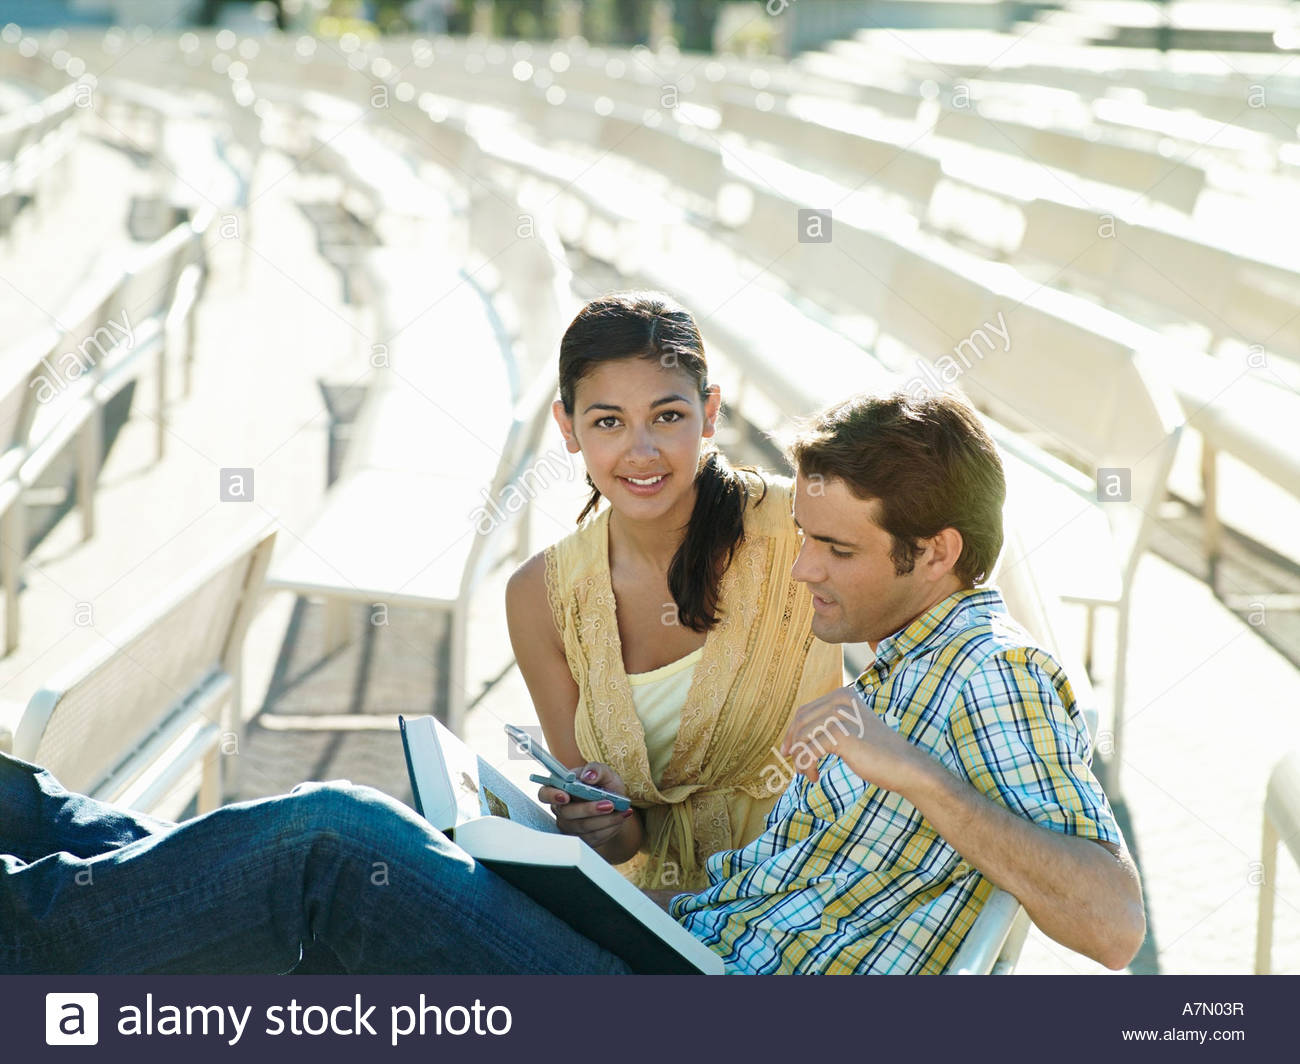 Young couple sitting in outdoor theatre woman holding mobile phone smiling man reading book - Stock Image